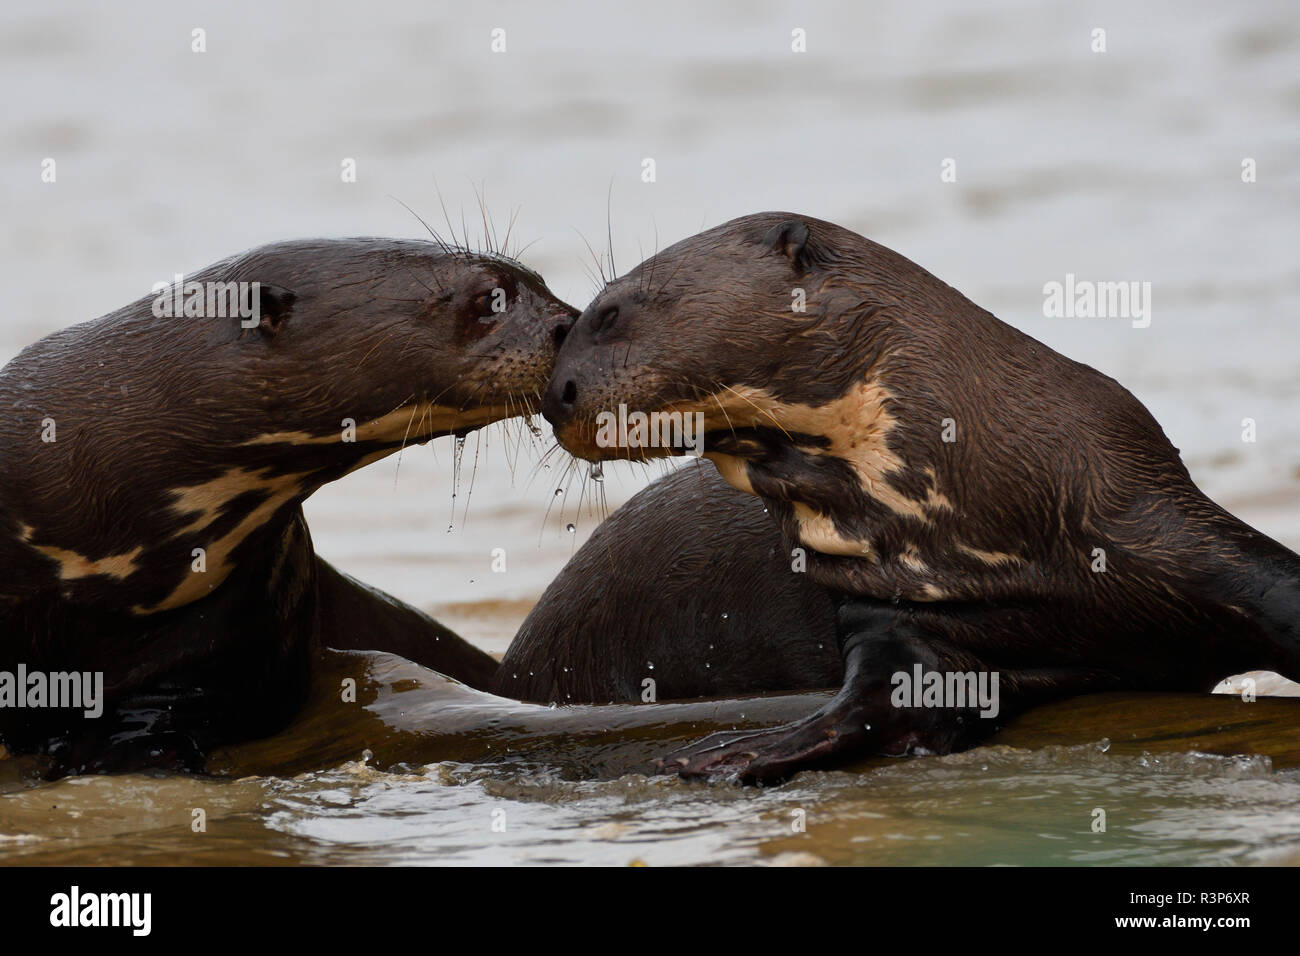 Giant Otter (Pteronura brasiliensis) playing together in water, Pantanal, Brazil - Stock Image